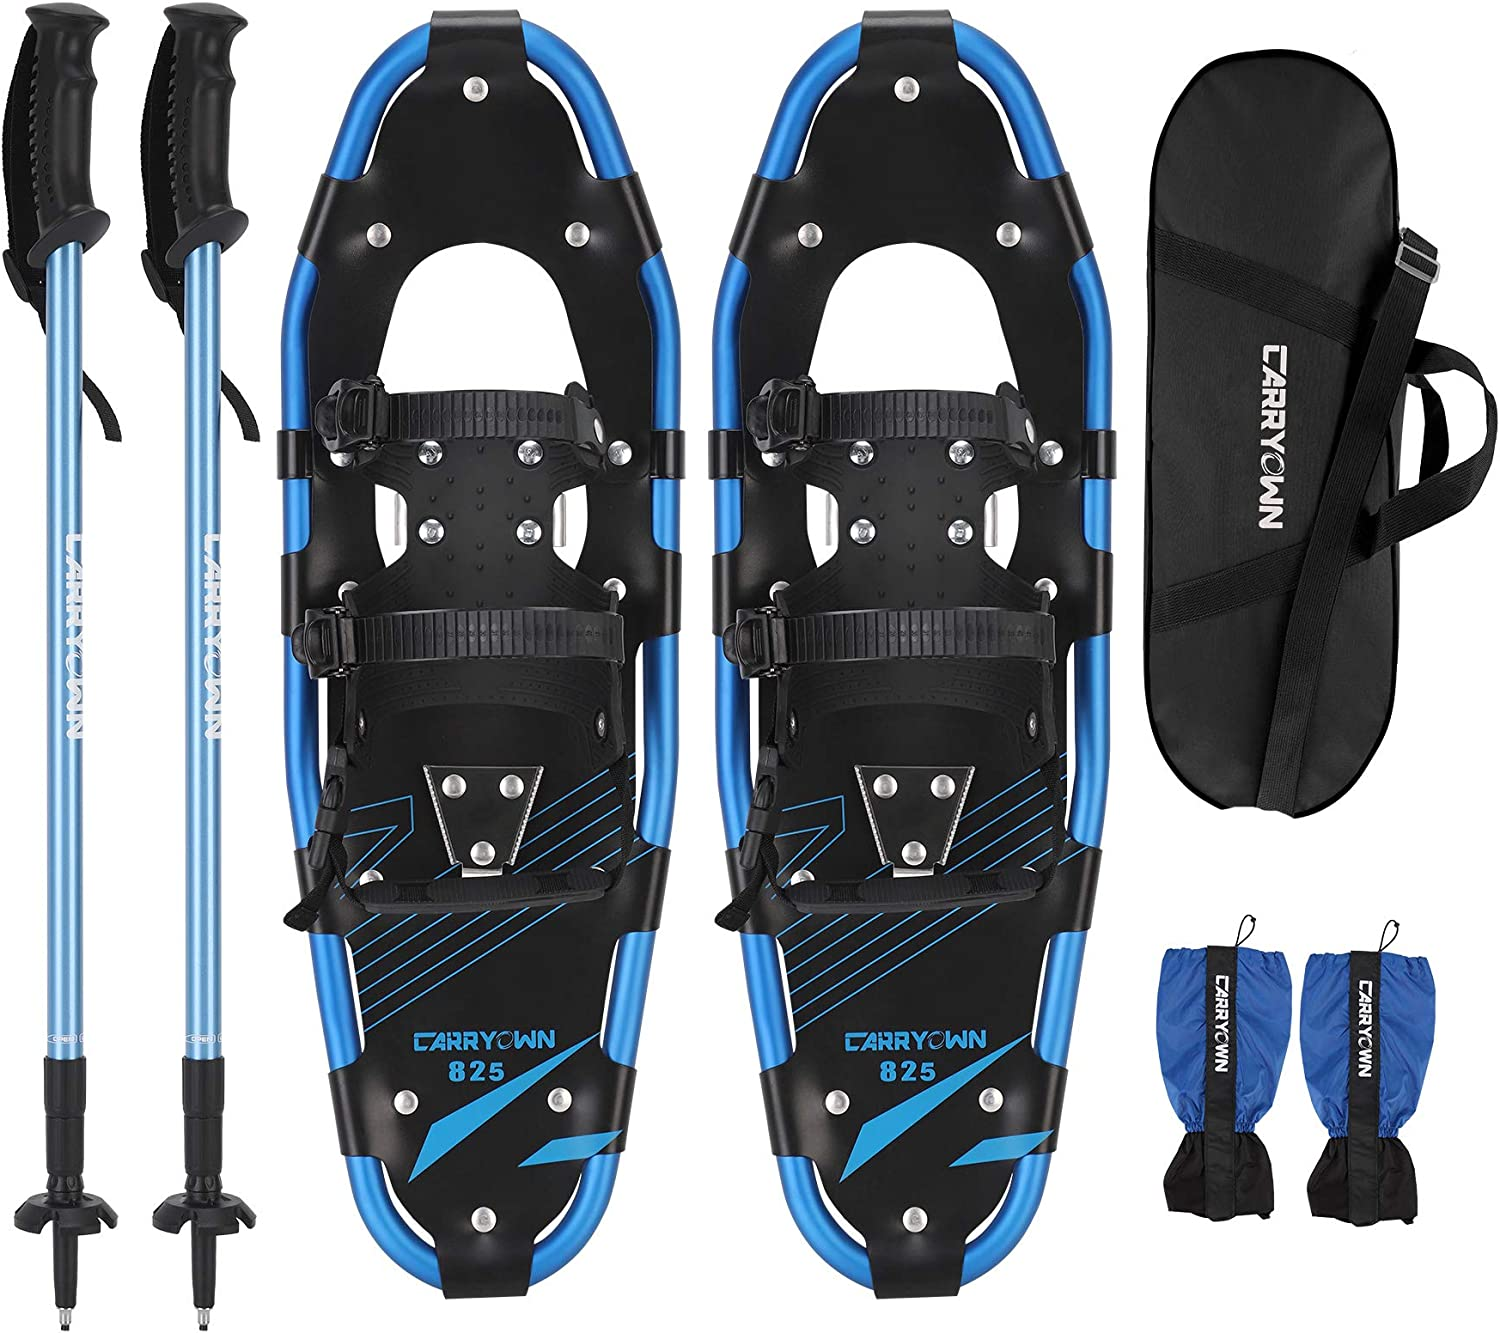 Carryown 4-in-1 Xtreme Lightweight Terrain Snowshoes for Adults